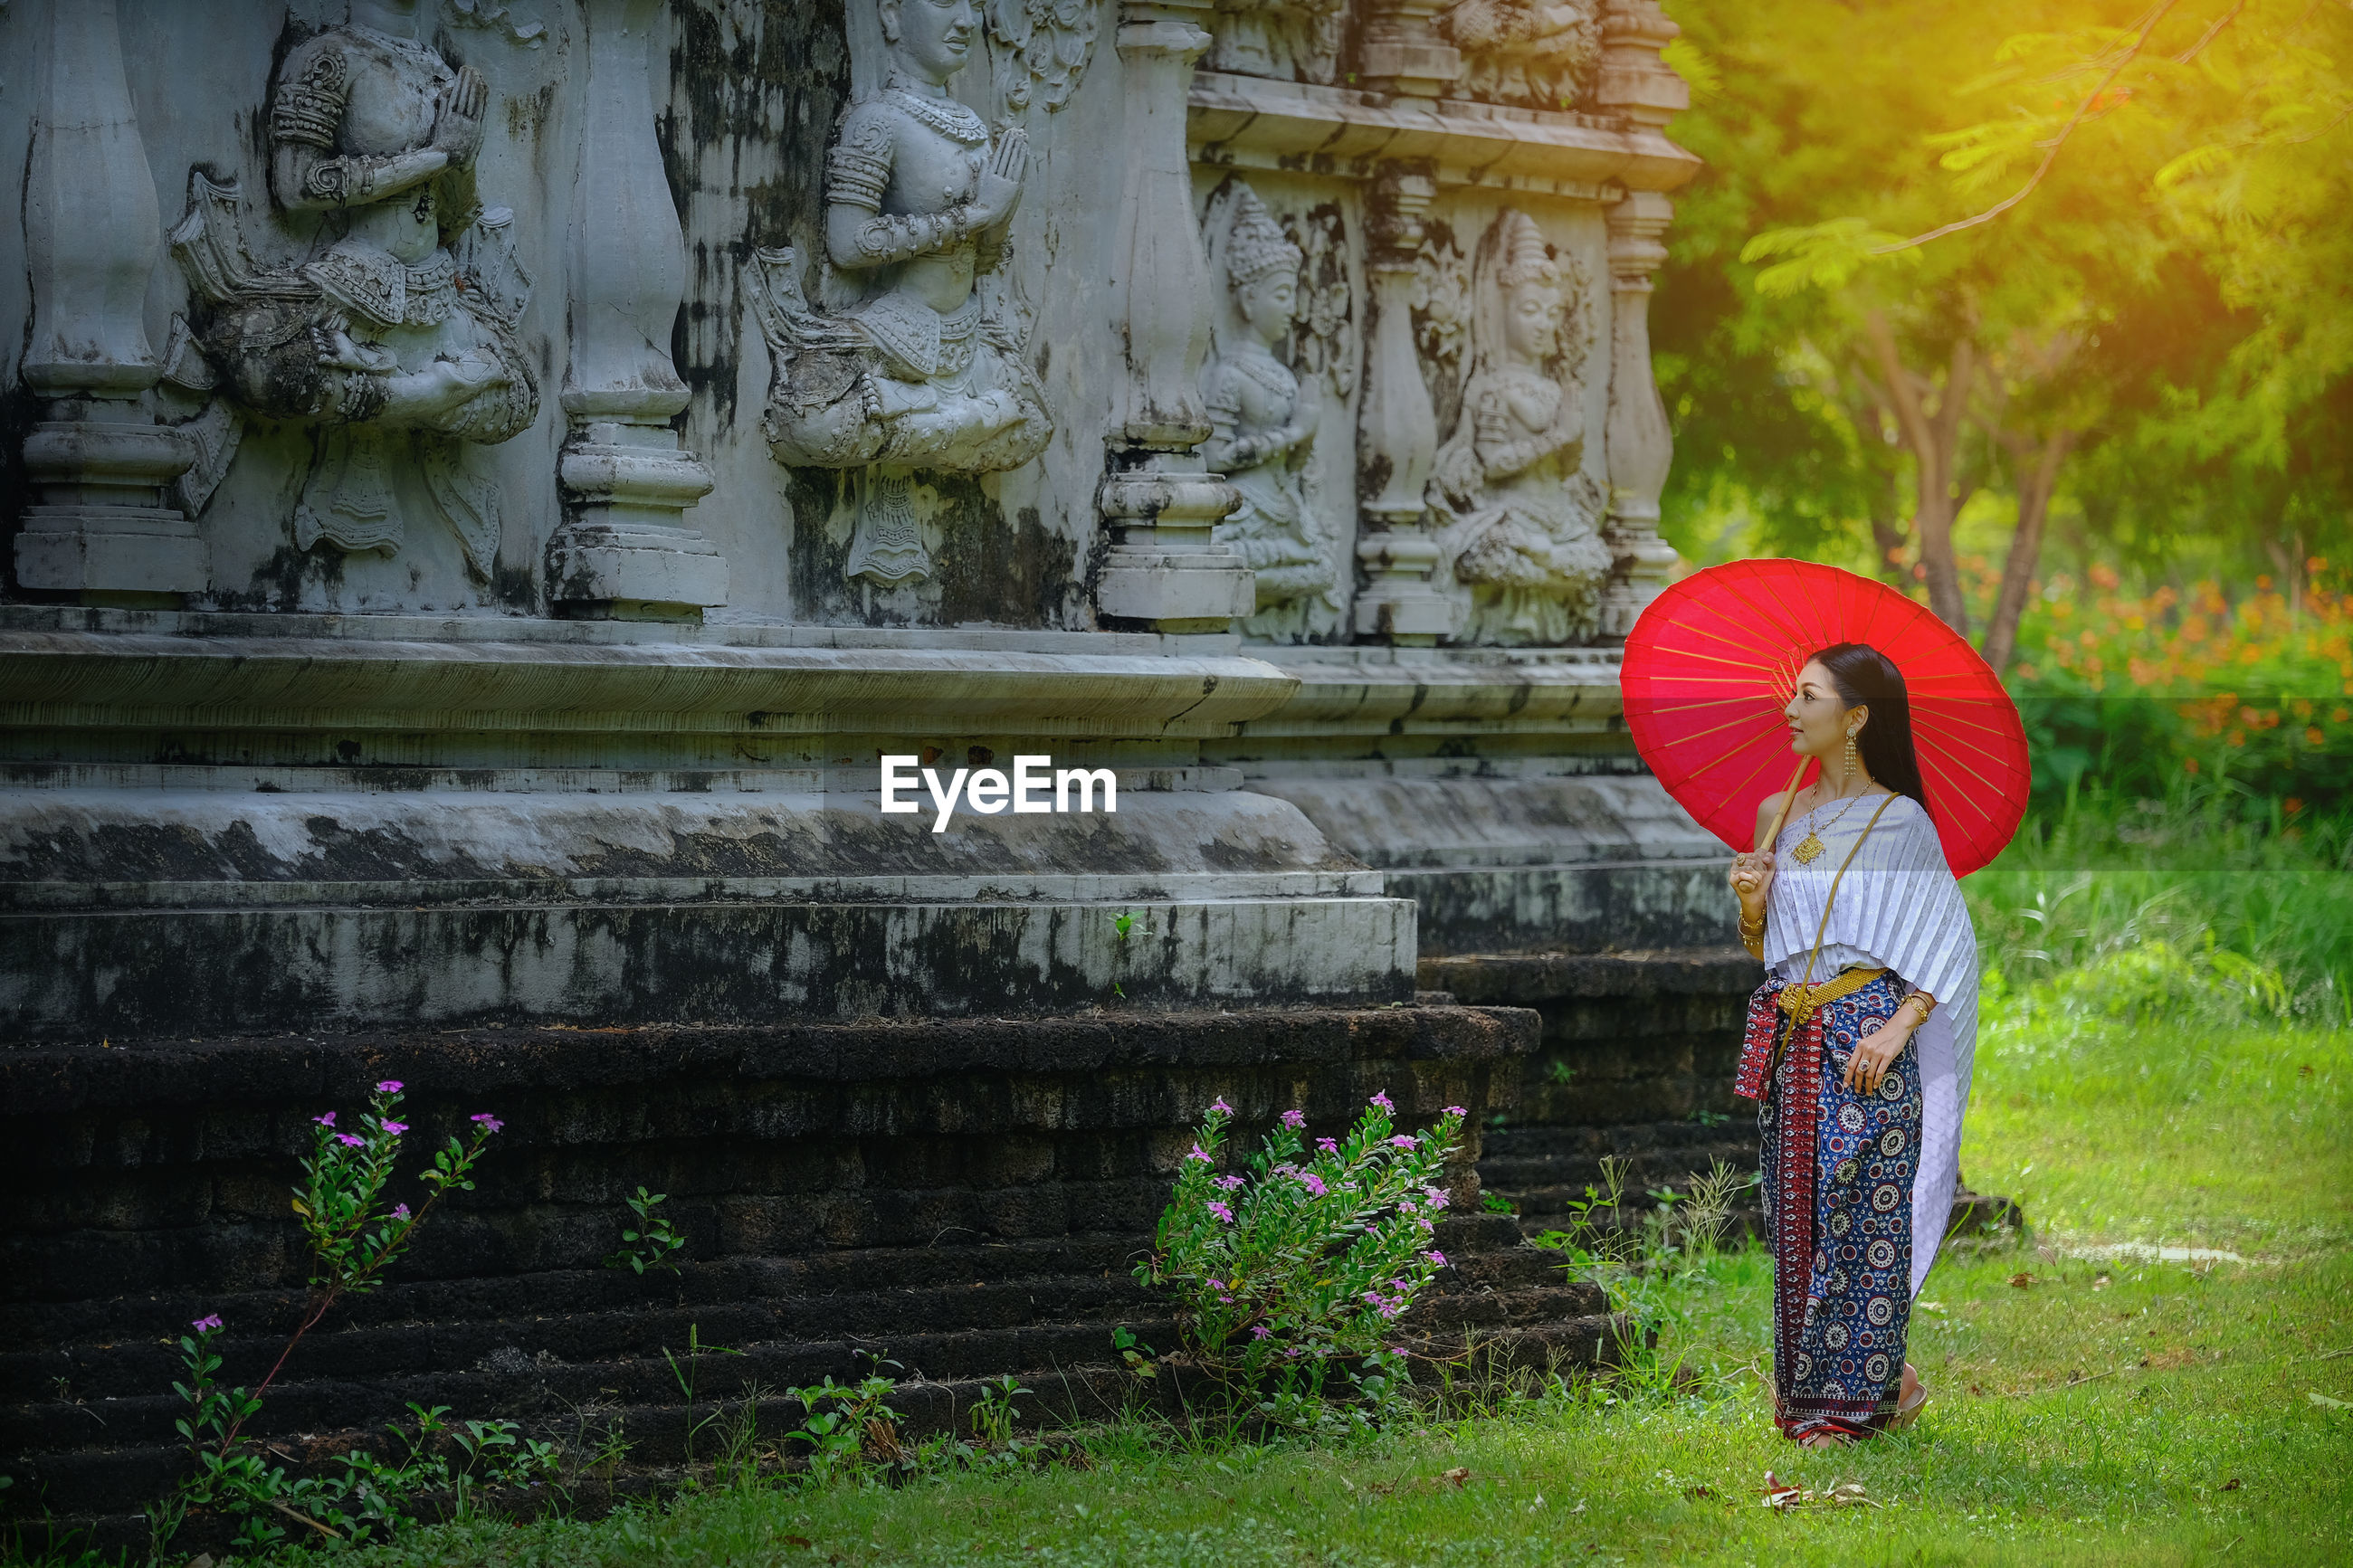 Woman with red umbrella standing by temple on grassy field